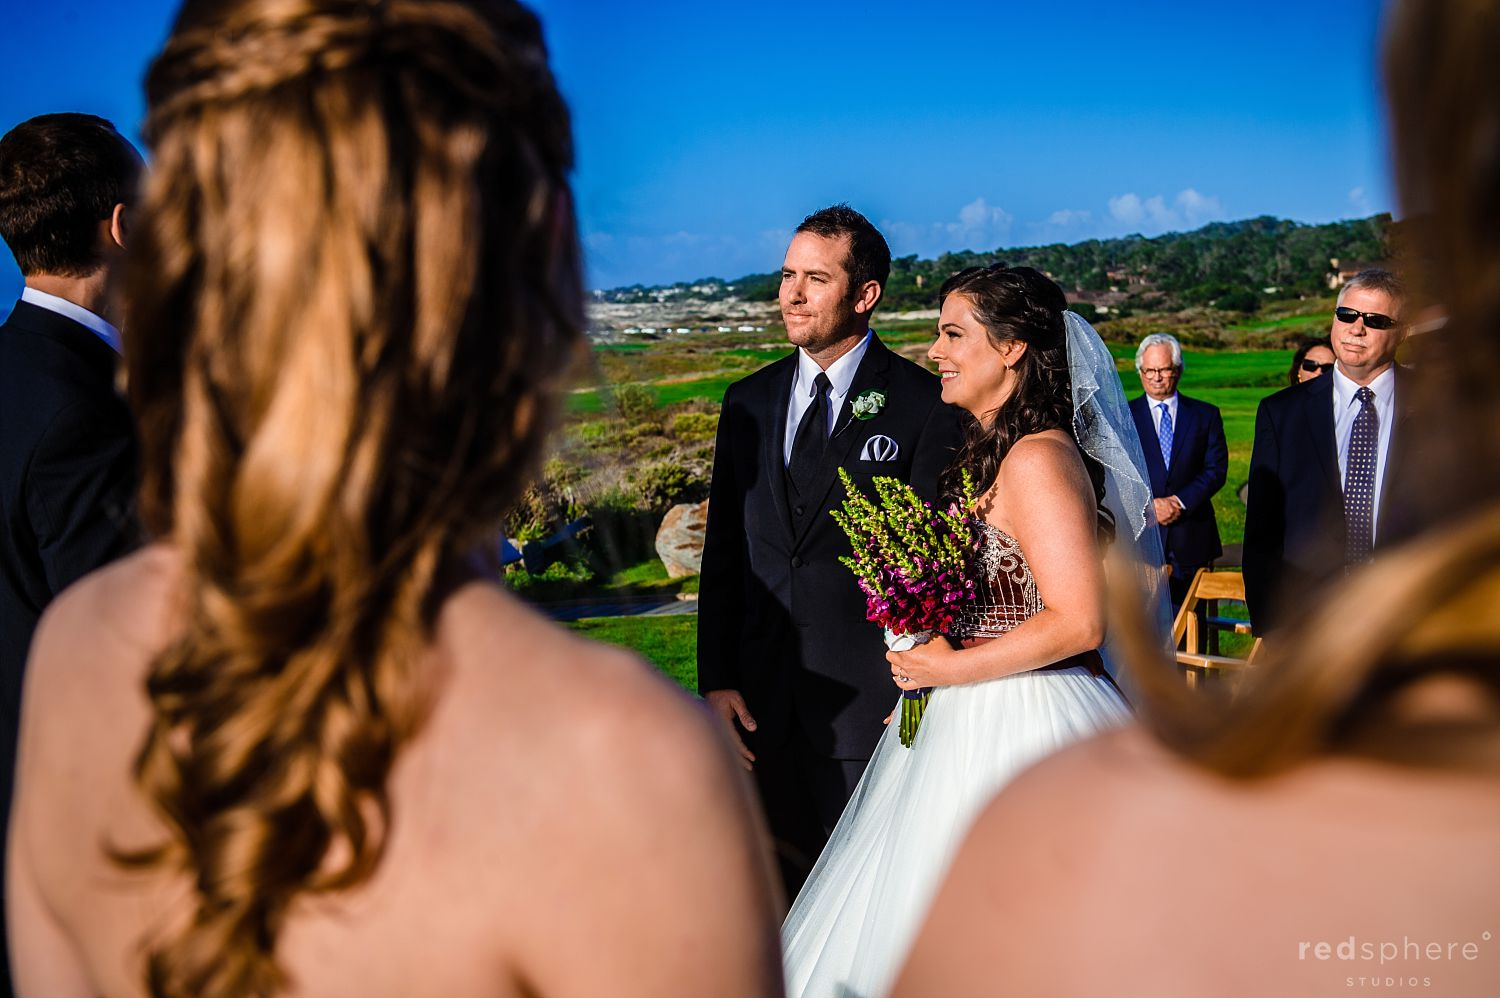 Guest View of Bride and Groom Looking Towards Their Officiant